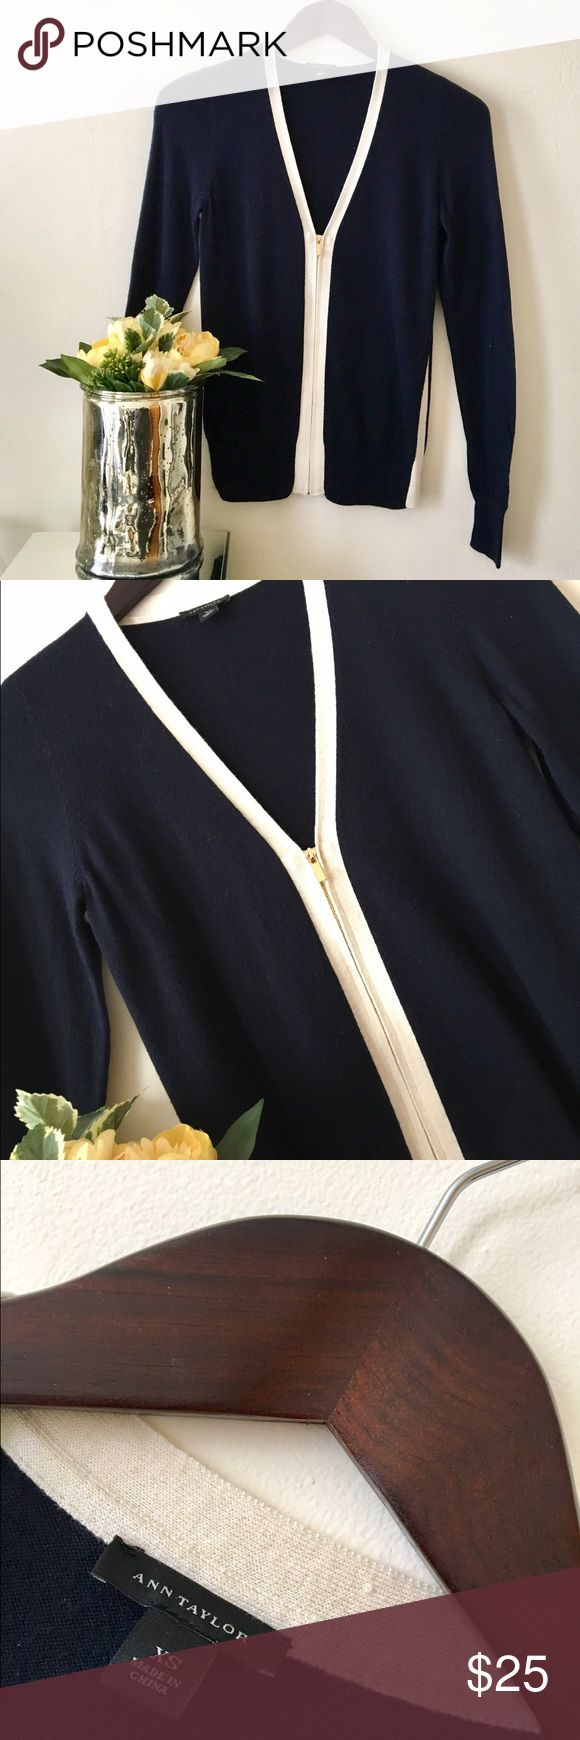 Ann Taylor Navy & Cream Zip Up Cardigan Ann Taylor Navy & Cream Zip Up Cardigan. Navy throughout with white trim around collar and along length of zipper. Cream trim also at sides from pit extending lengthwise to hem. Front zip up closure is a soft gold color. Worn only once. Size XS Ann Taylor Sweaters Cardigans